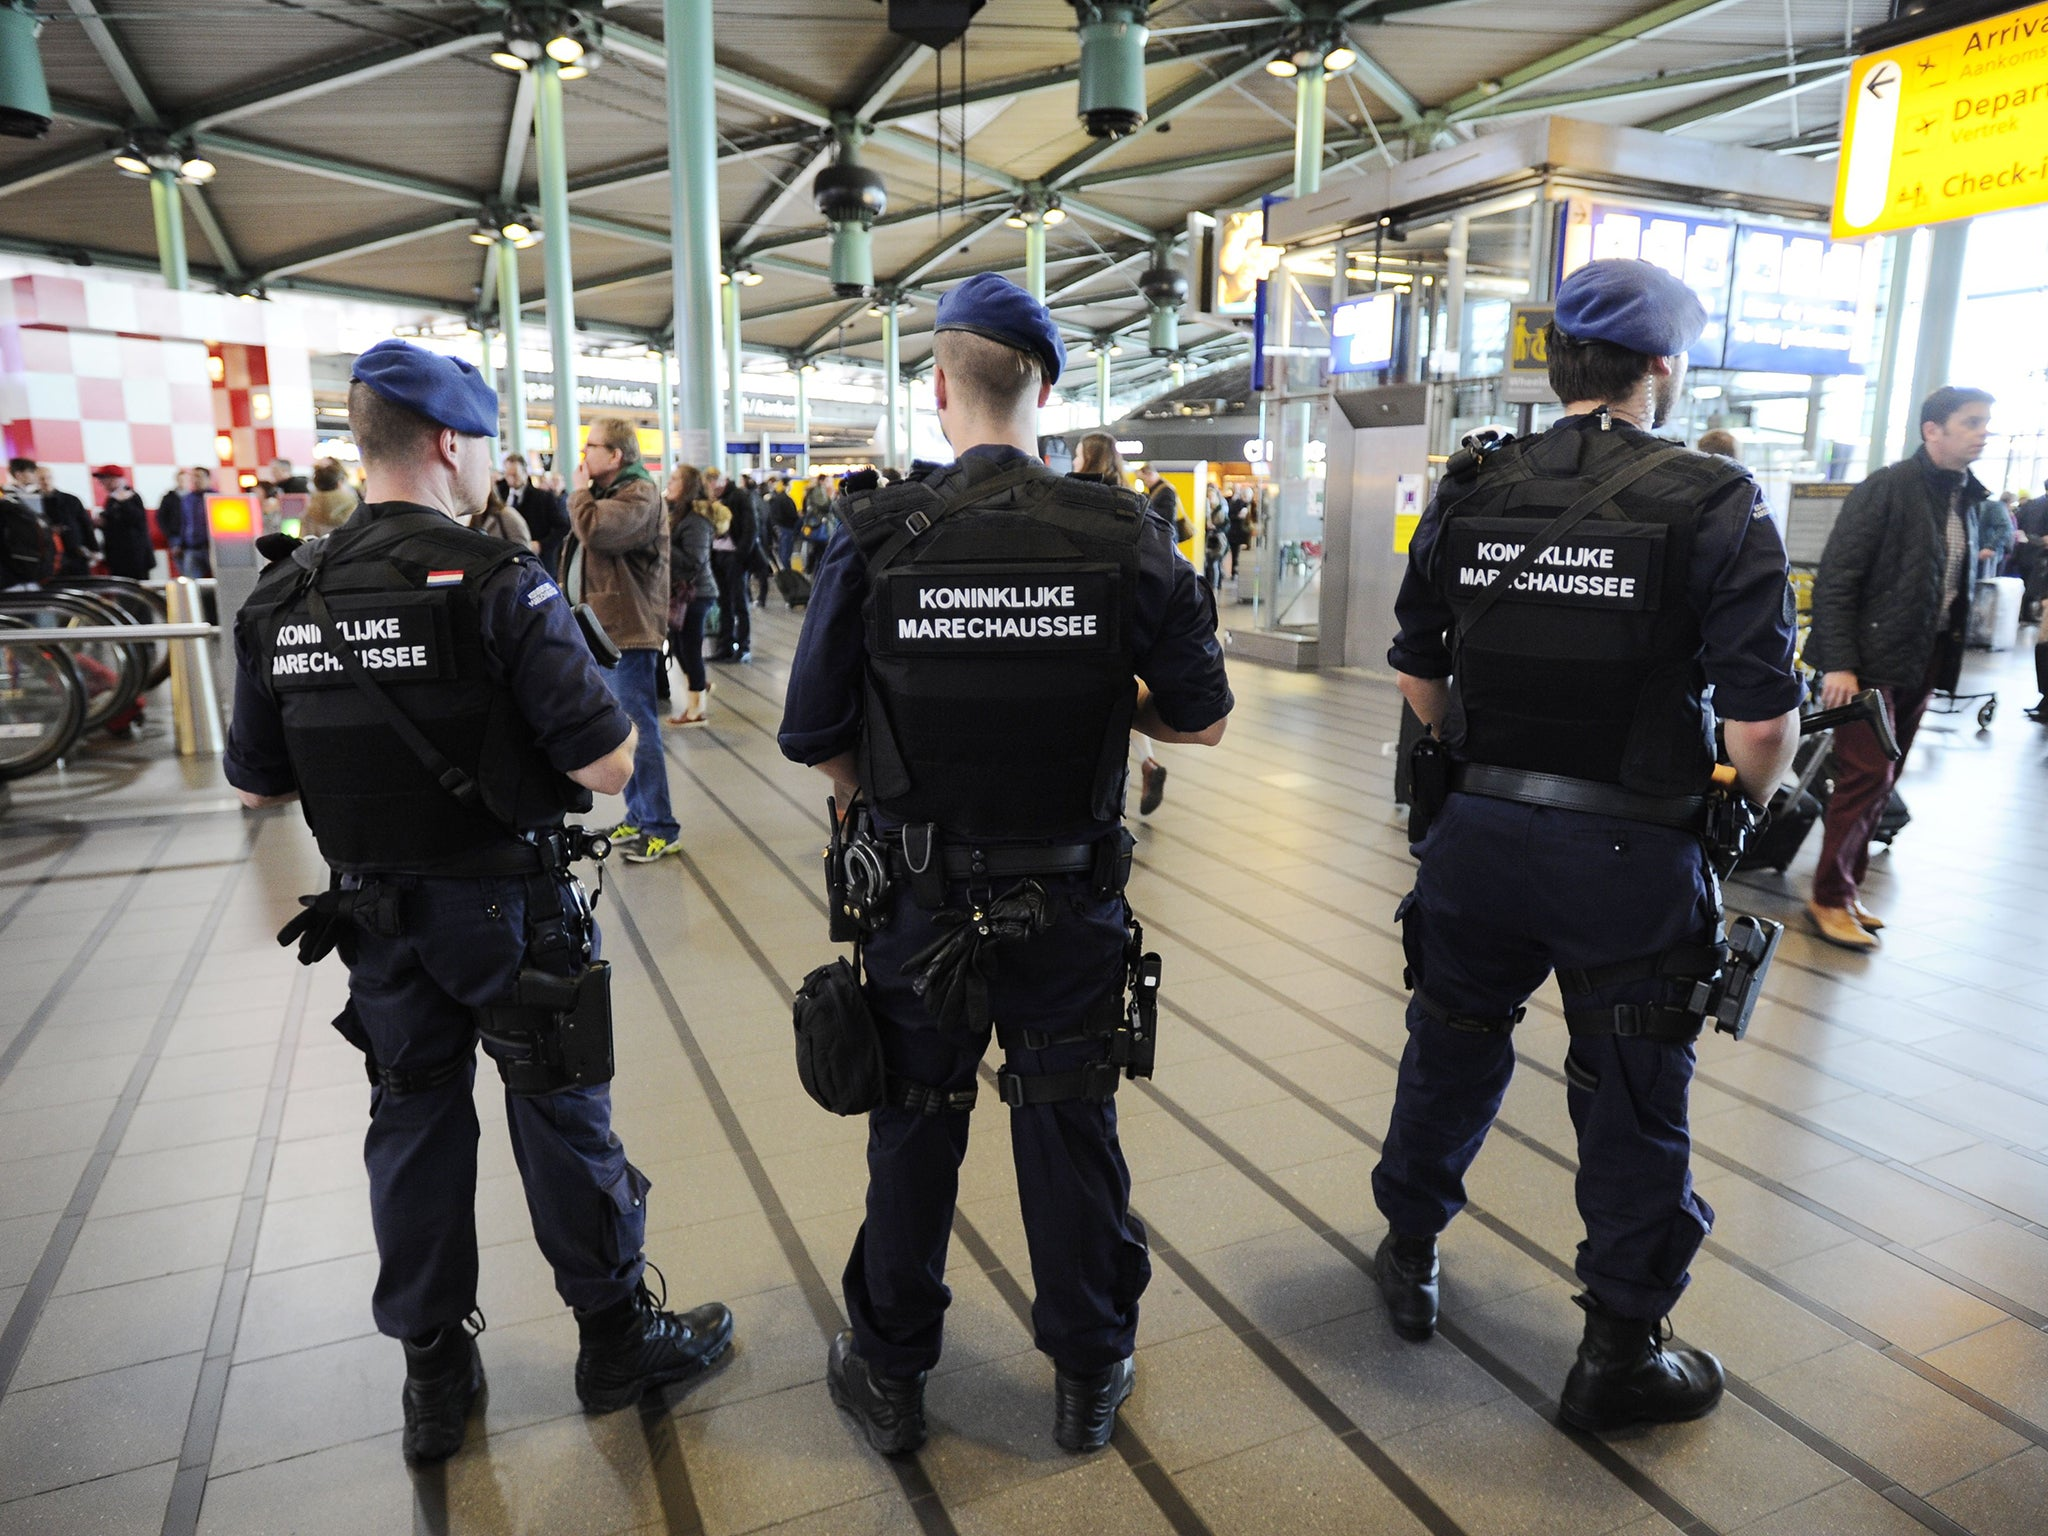 travel news advice easter holiday brussels attacks disruption flights trains warnings